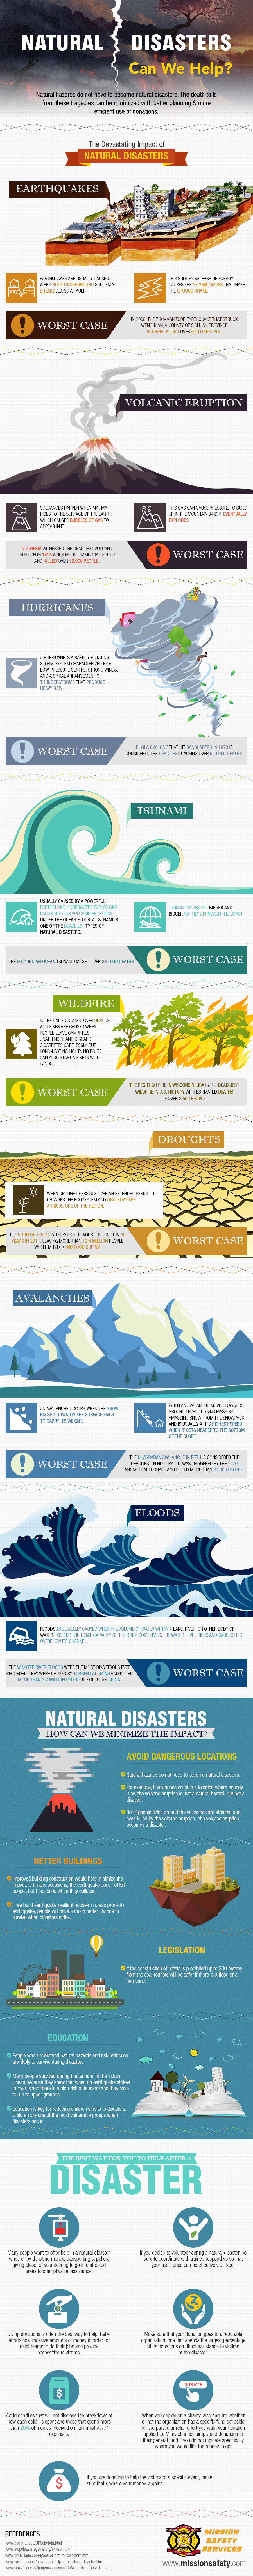 natural-disasters-can-we-help-infographic (1)